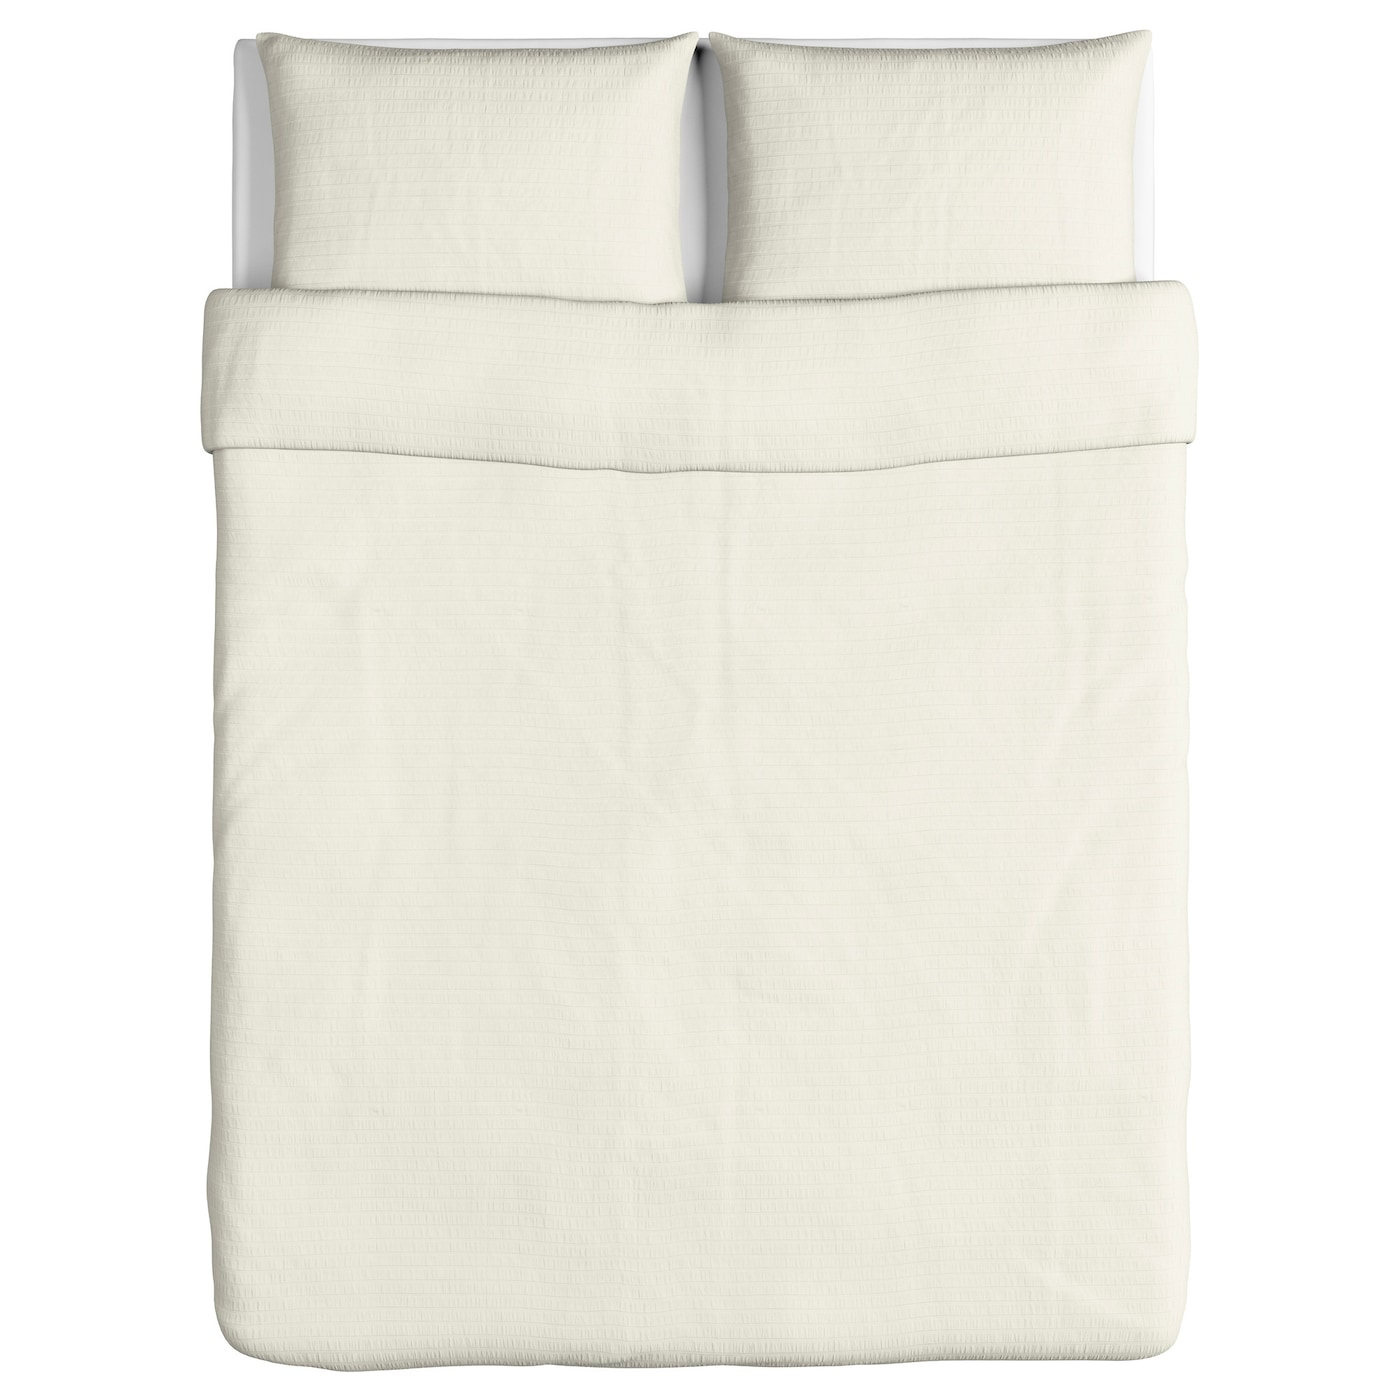 ofelia vass quilt cover and 2 pillowcases white 200x200 50x80 cm ikea. Black Bedroom Furniture Sets. Home Design Ideas